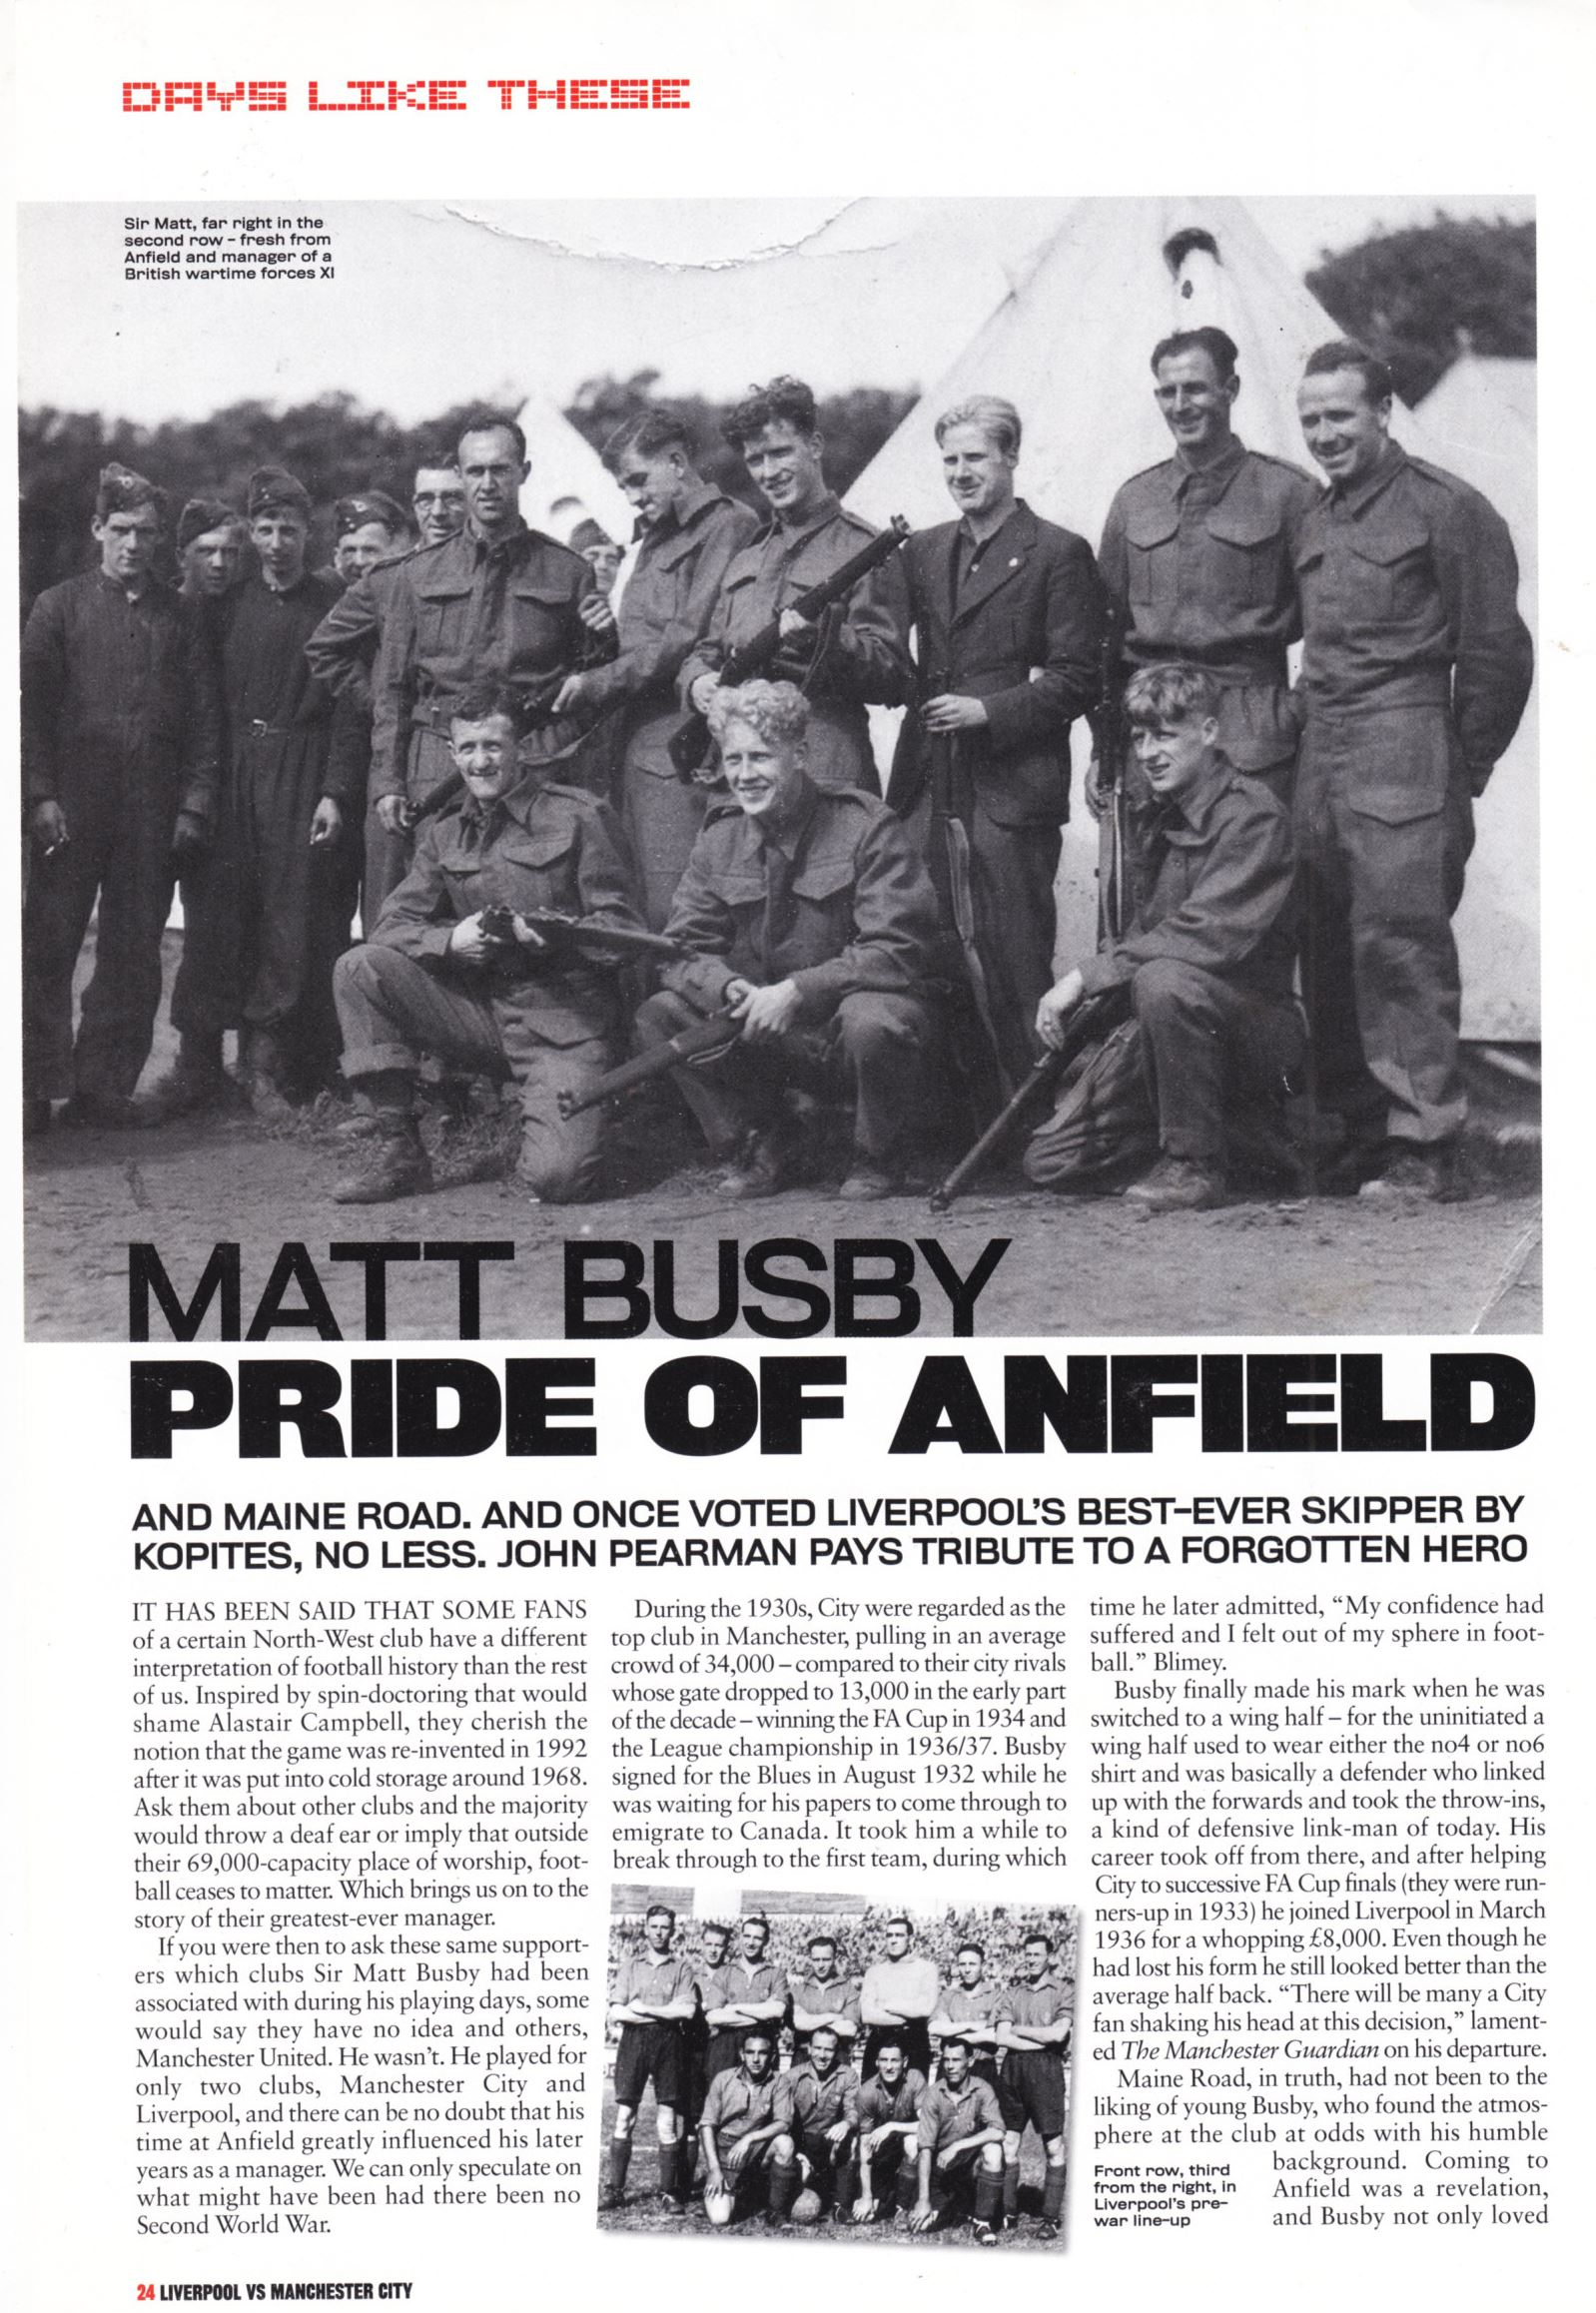 Pride of Anfield - LFC Official Matchday Magazine